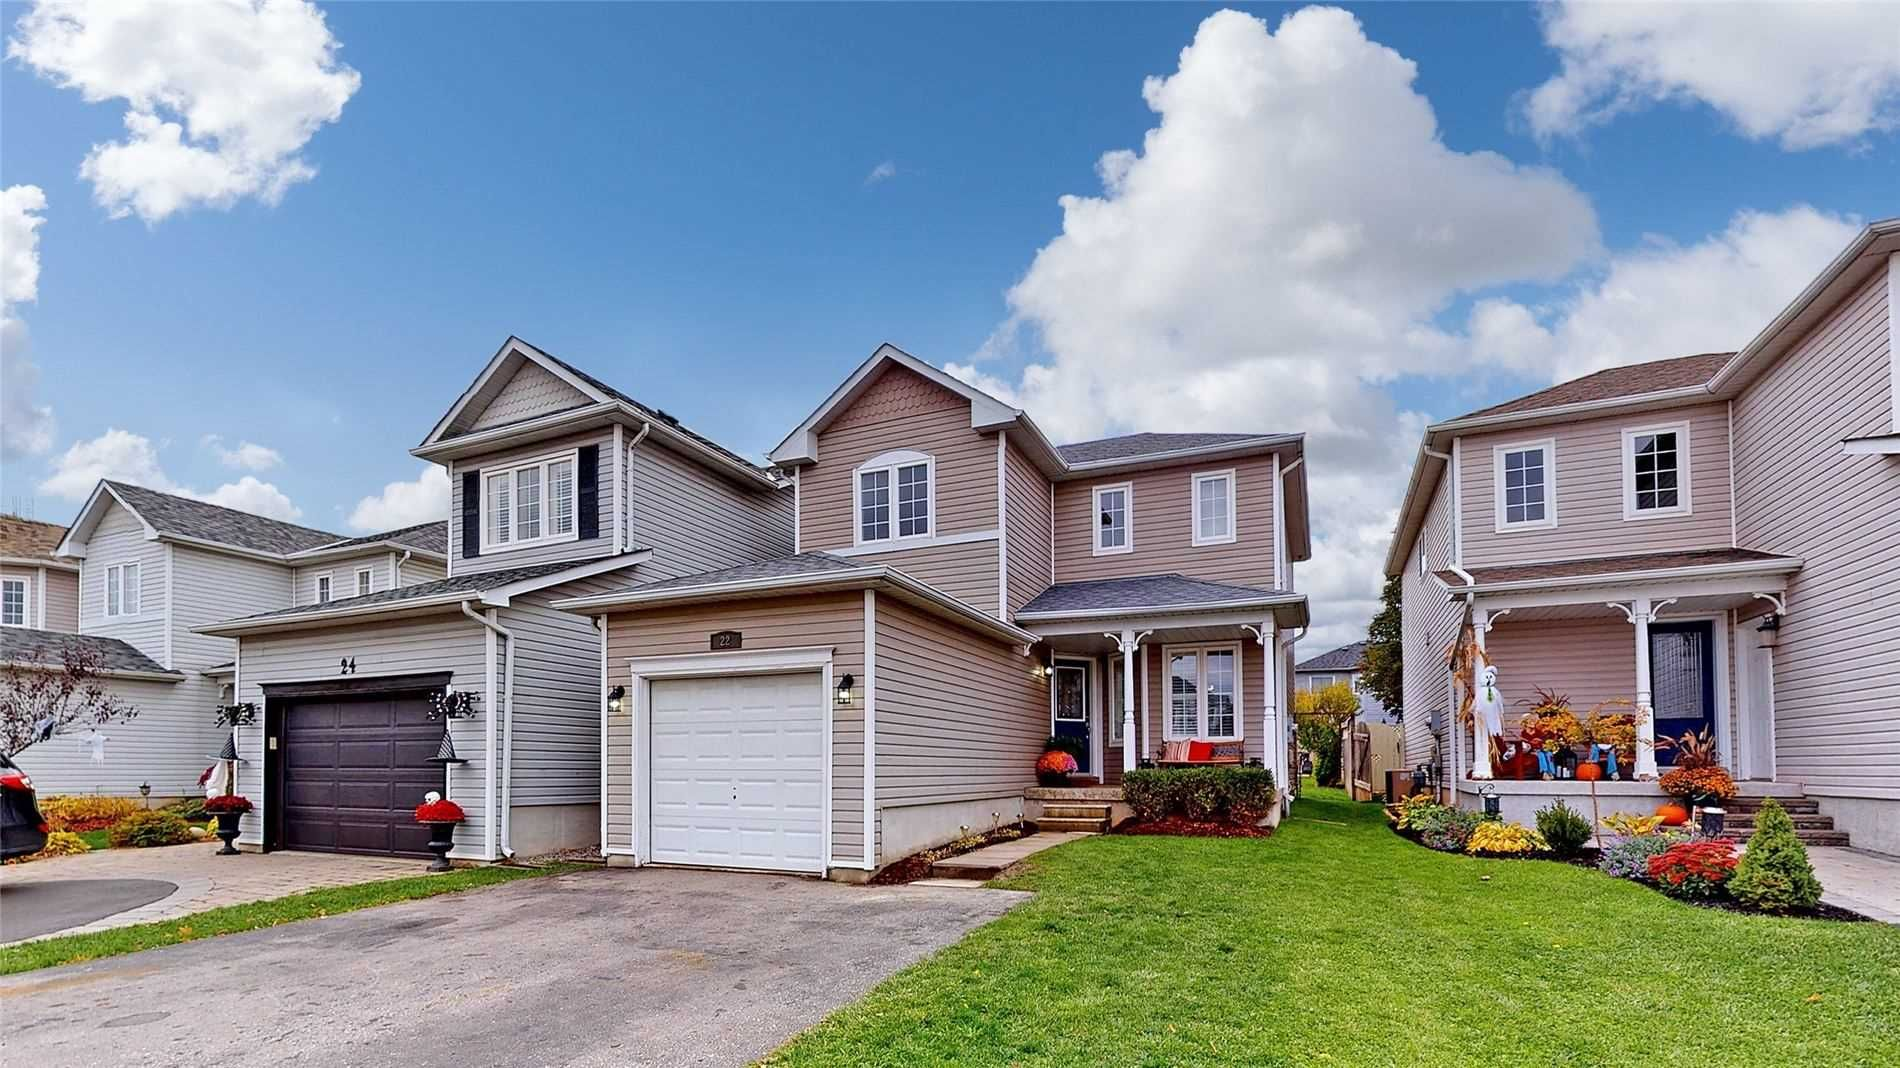 Main Photo: 22 Rustwood Street in Clarington: Bowmanville House (2-Storey) for sale : MLS®# E4963455